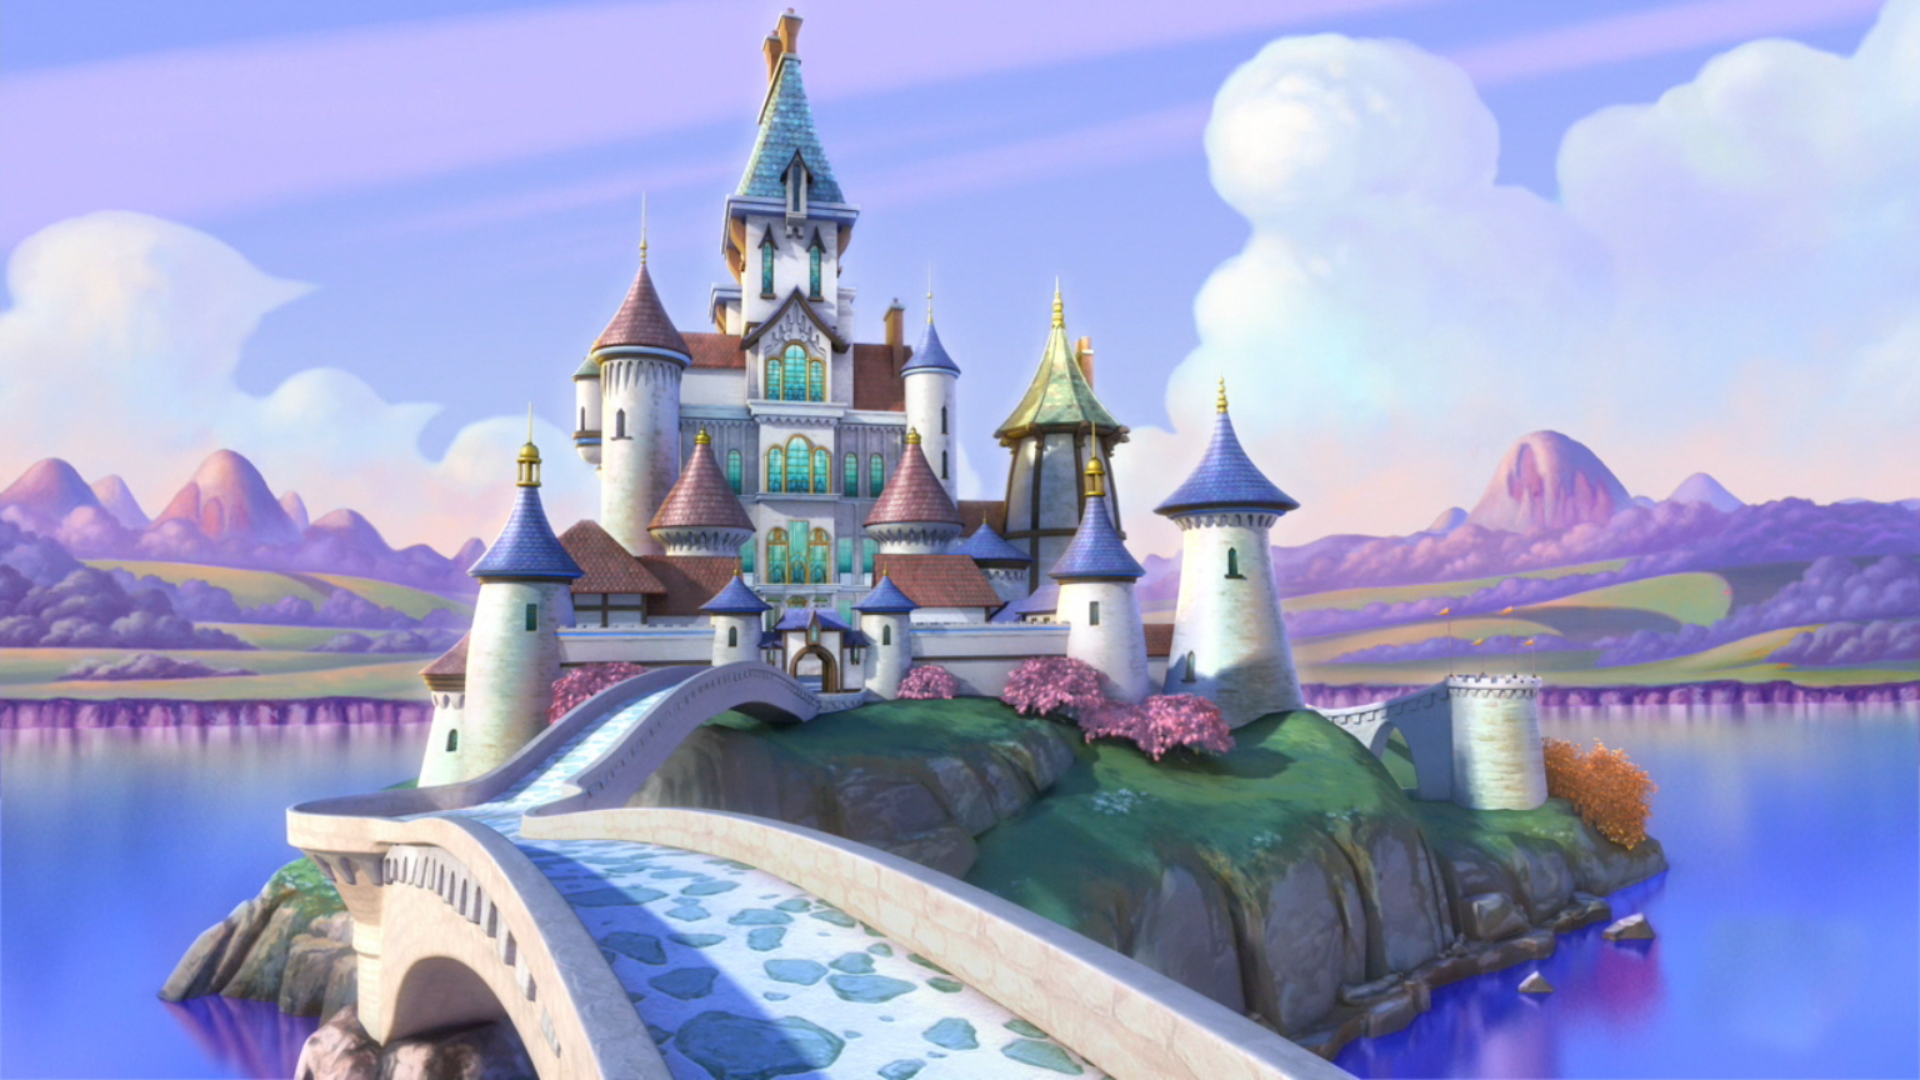 Image Wiki Background Png Sofia The First Wiki Fandom Powered